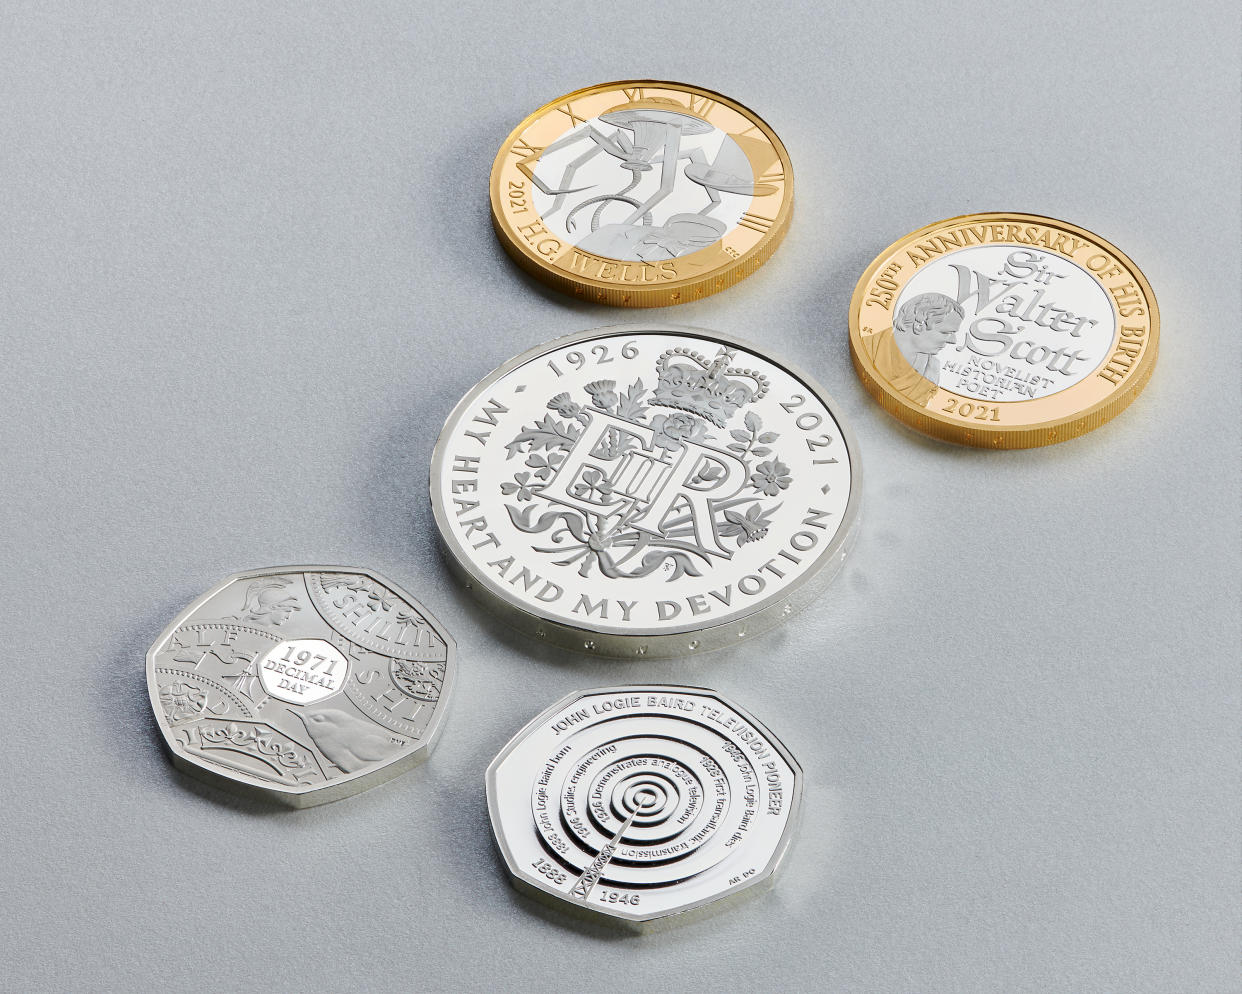 The 2021 collection of coins from the Royal Mint